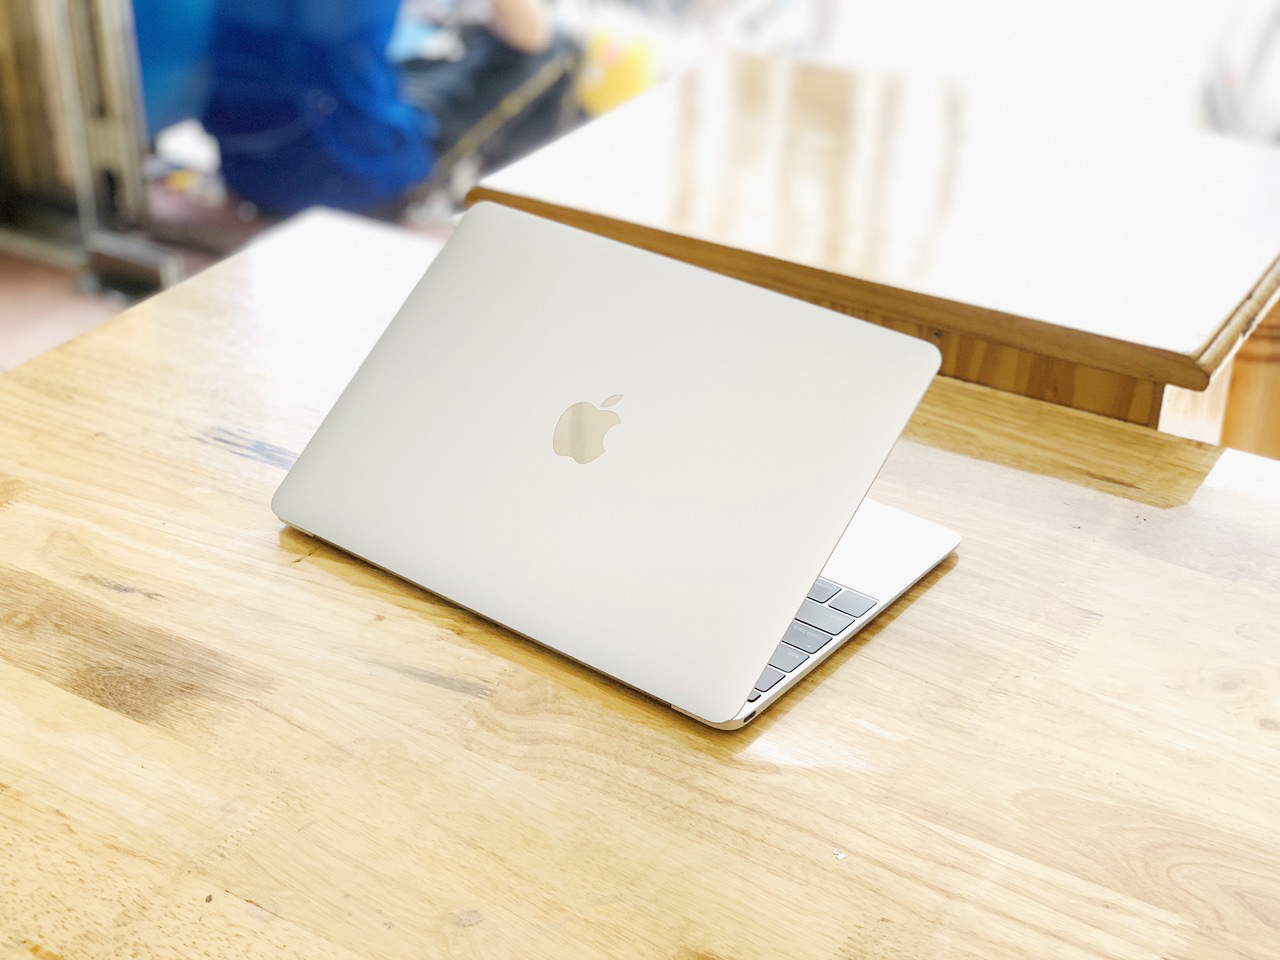 Macbook retina 12-inch 2015